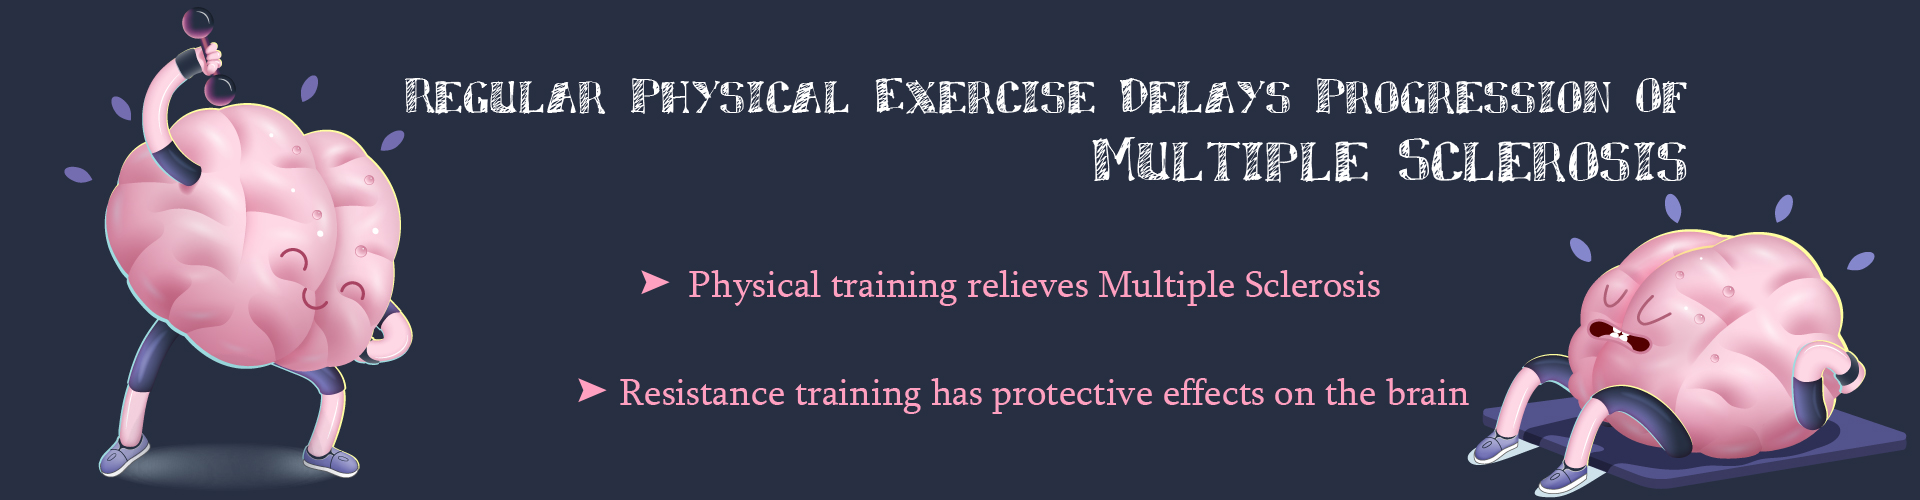 Regular physical exercise delays progression of multiple sclerosis